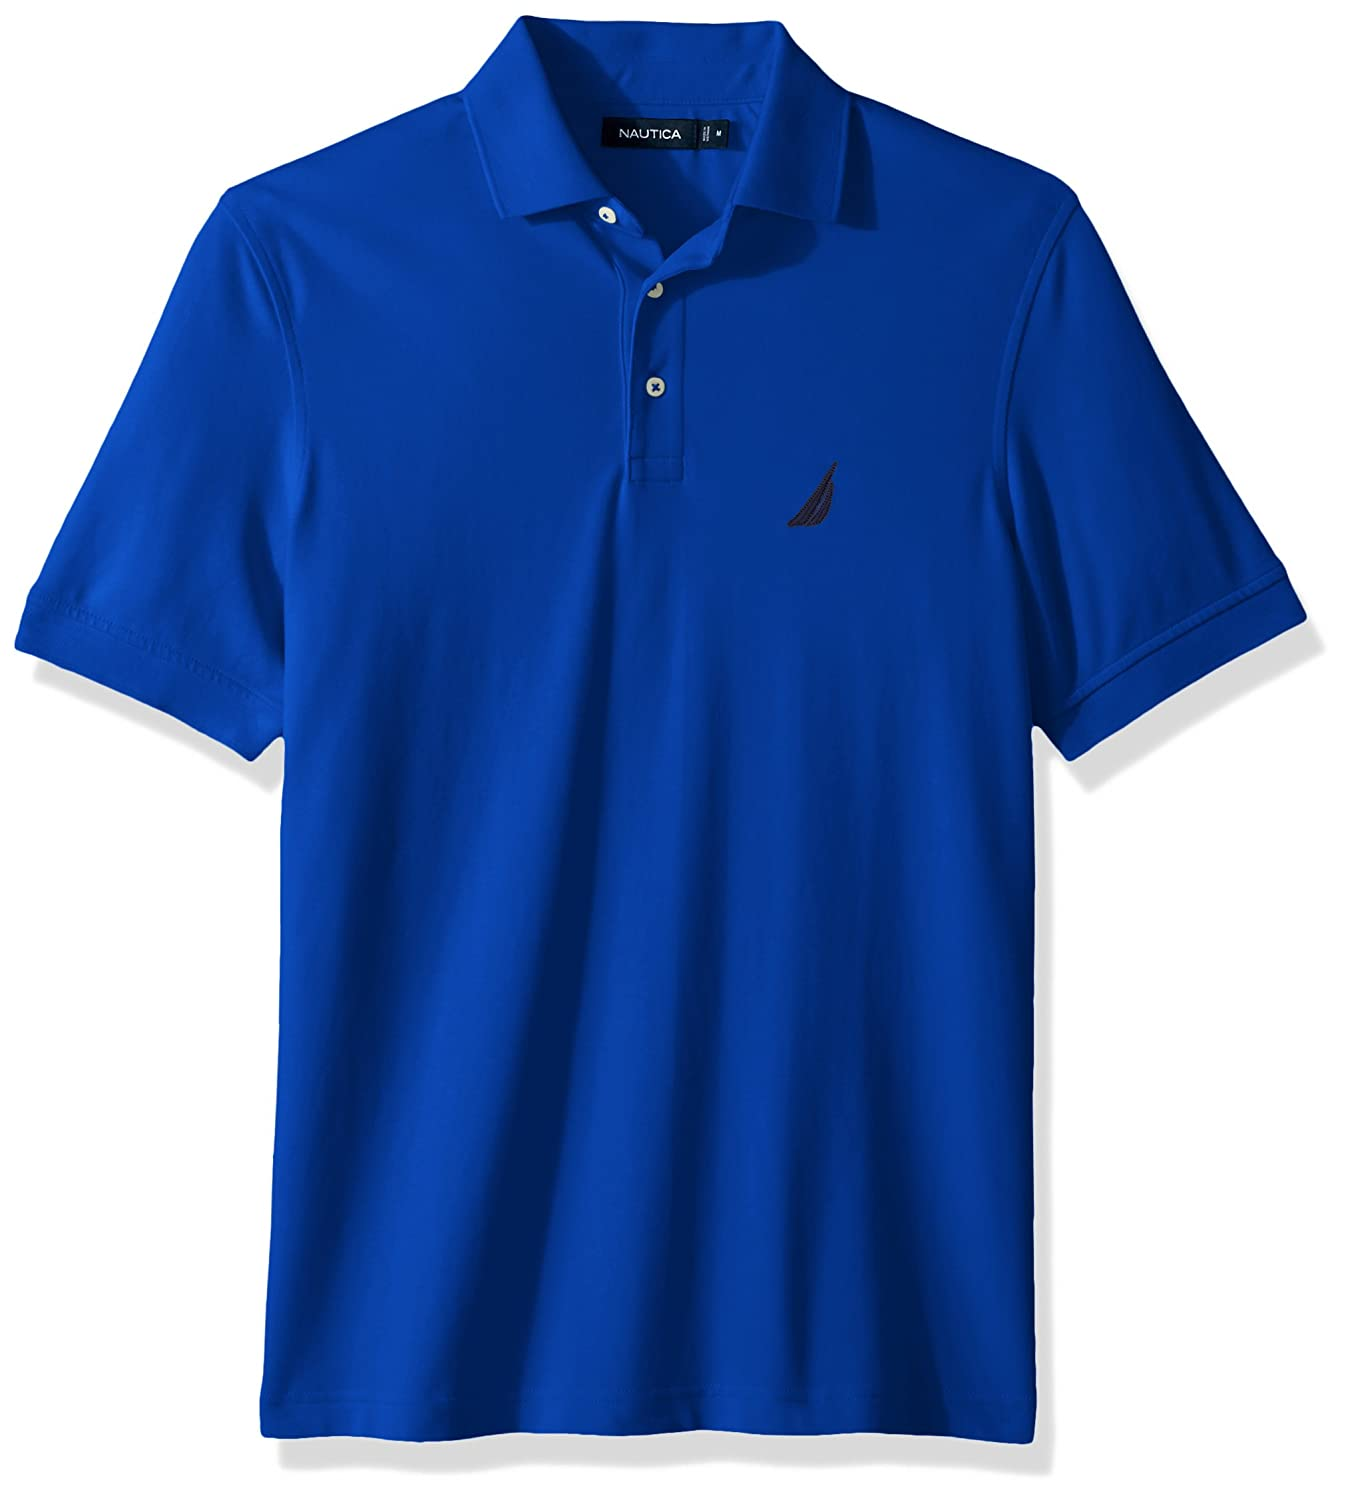 00c0ad96b Nautica Mens Short Sleeve Solid Stretch Cotton Pique Polo Shirt Polo Shirt   Amazon.ca  Clothing   Accessories